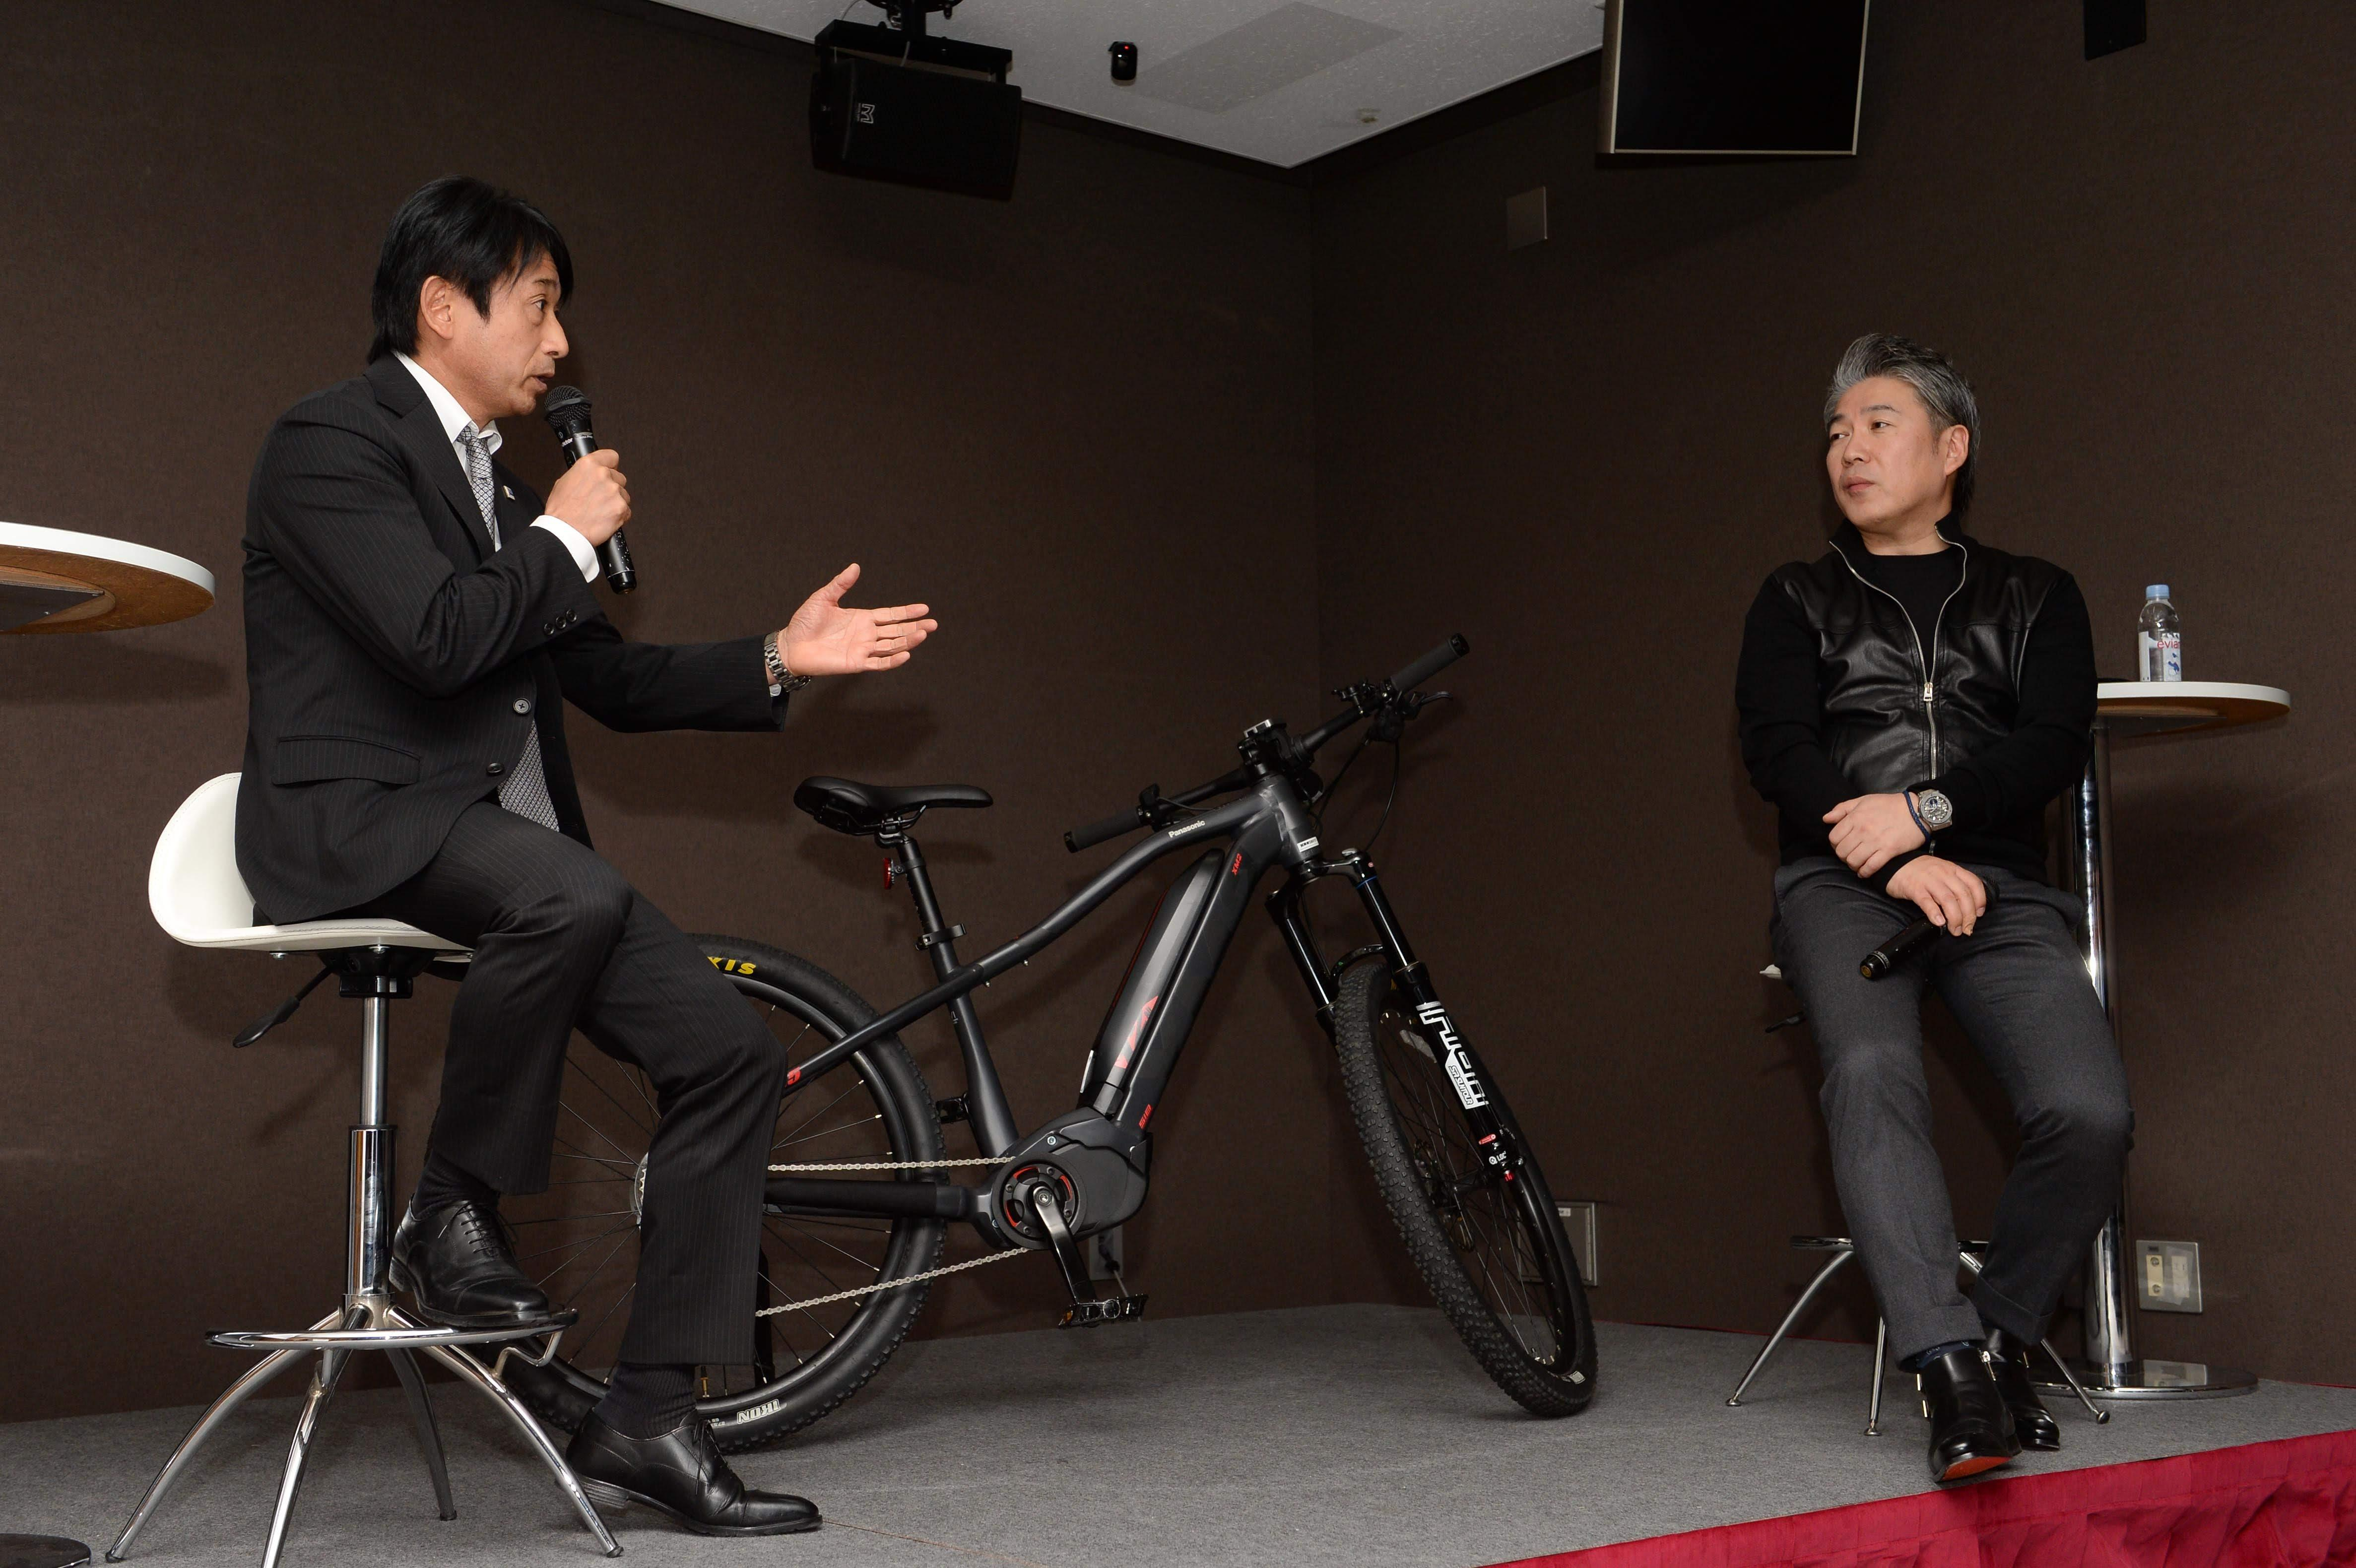 Seminar: Coexistence of Automobile and Bicycles / 自動車と自転車の共生について